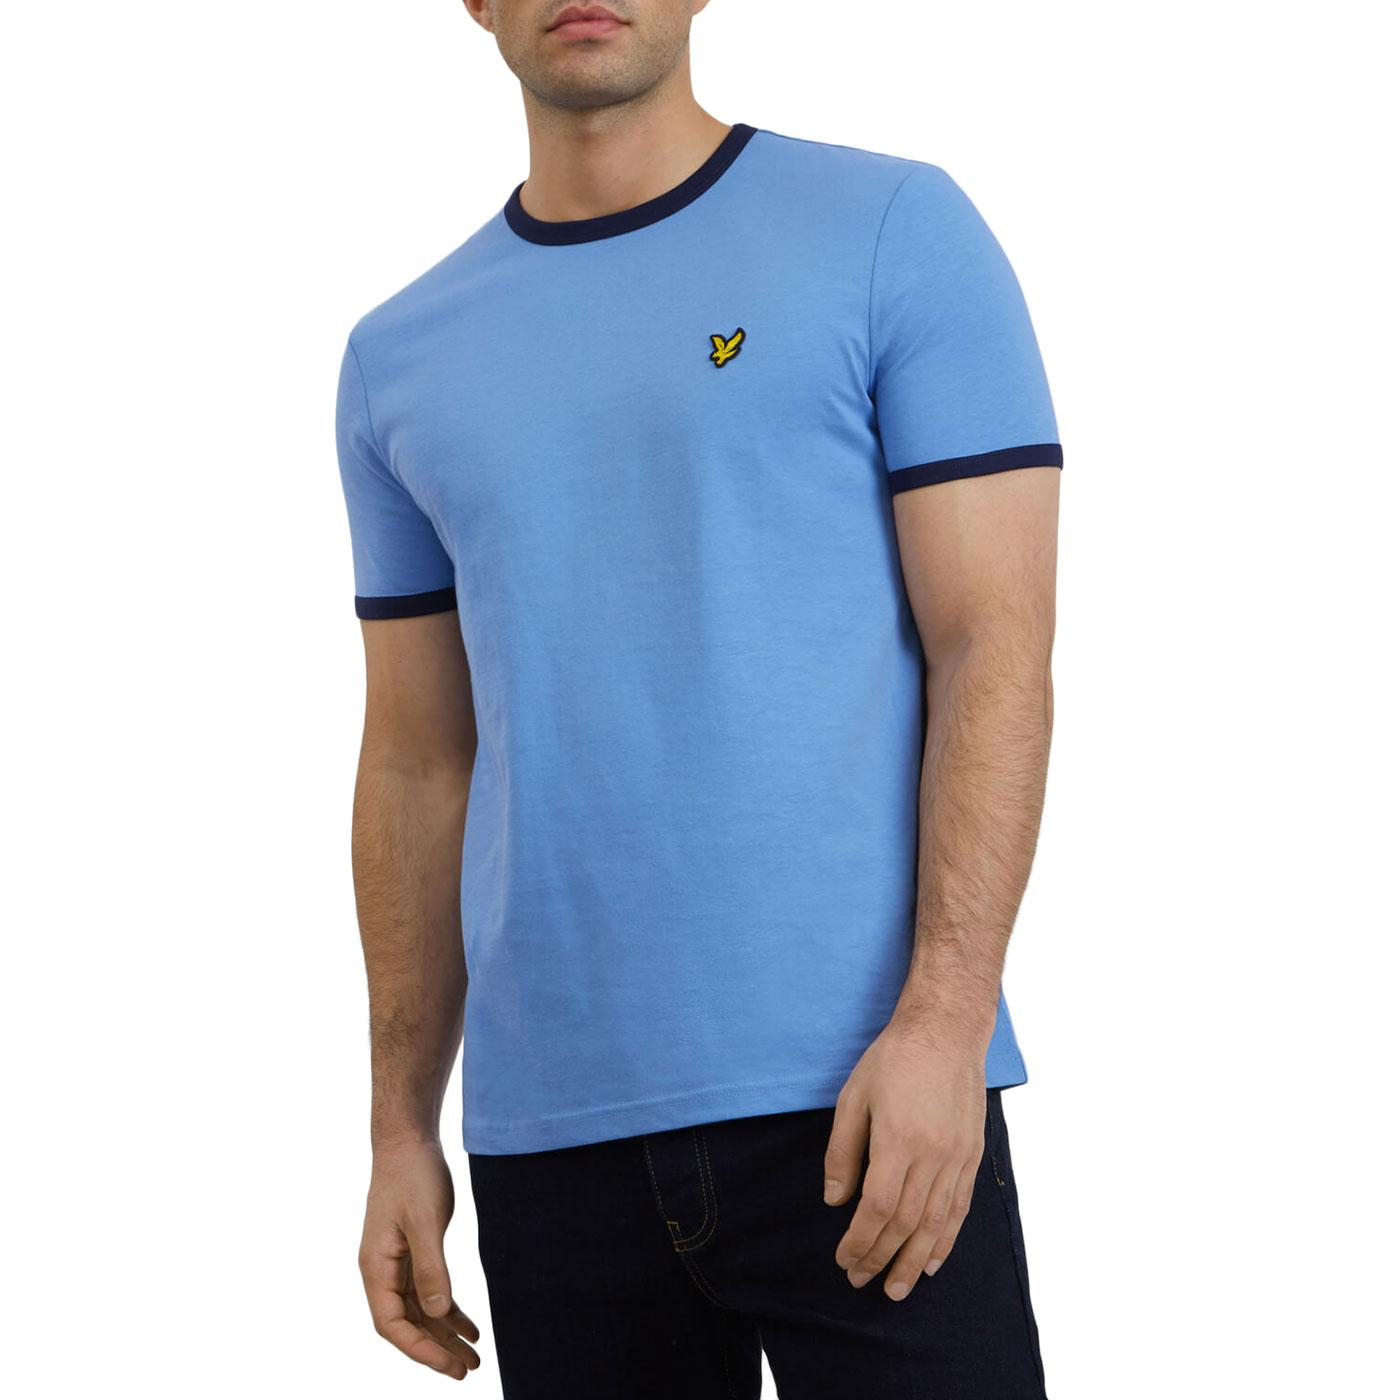 LYLE & SCOTT Retro Mod Ringer T-Shirt (Cornflower)